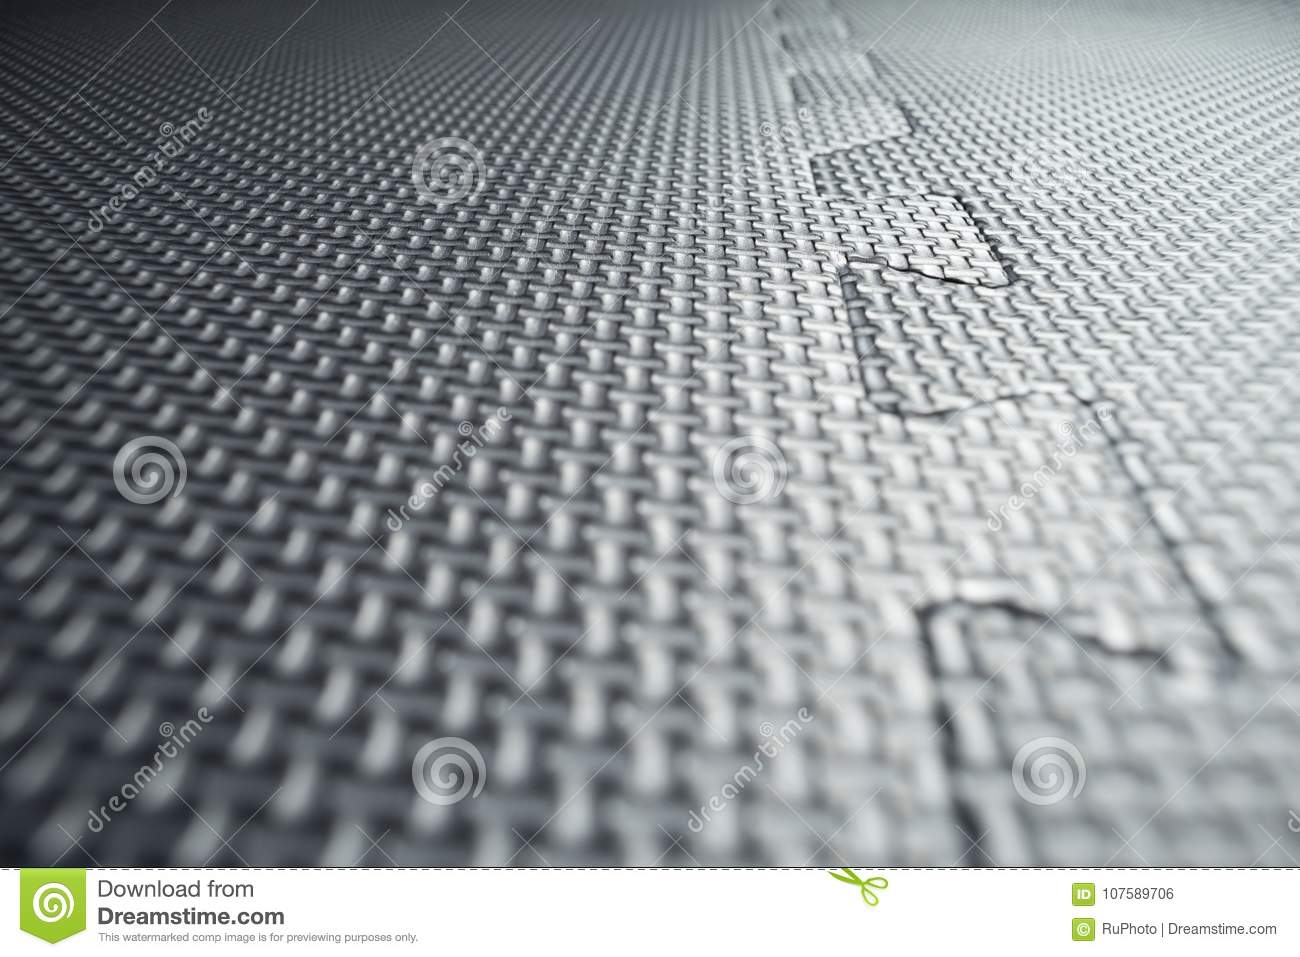 Heavy Duty Black Rubber Flooring Tiles Inside A Garage Stock Photo - How to clean black rubber gym flooring